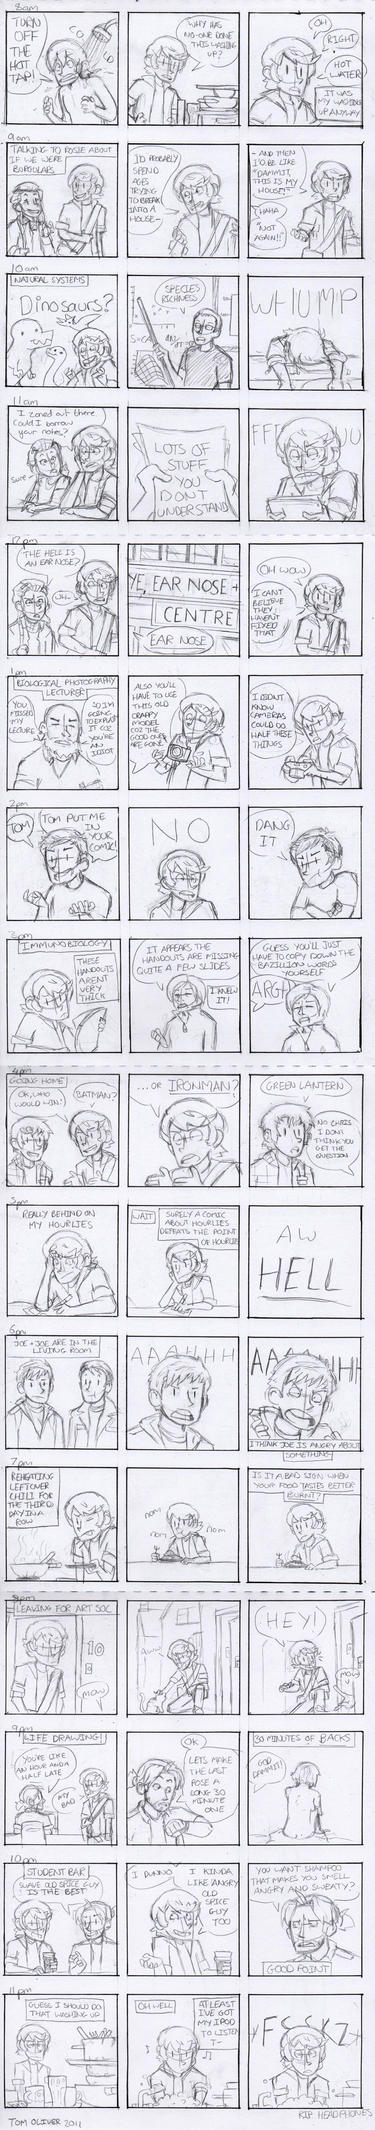 Hourly Comic Day 2011 by Inyuo